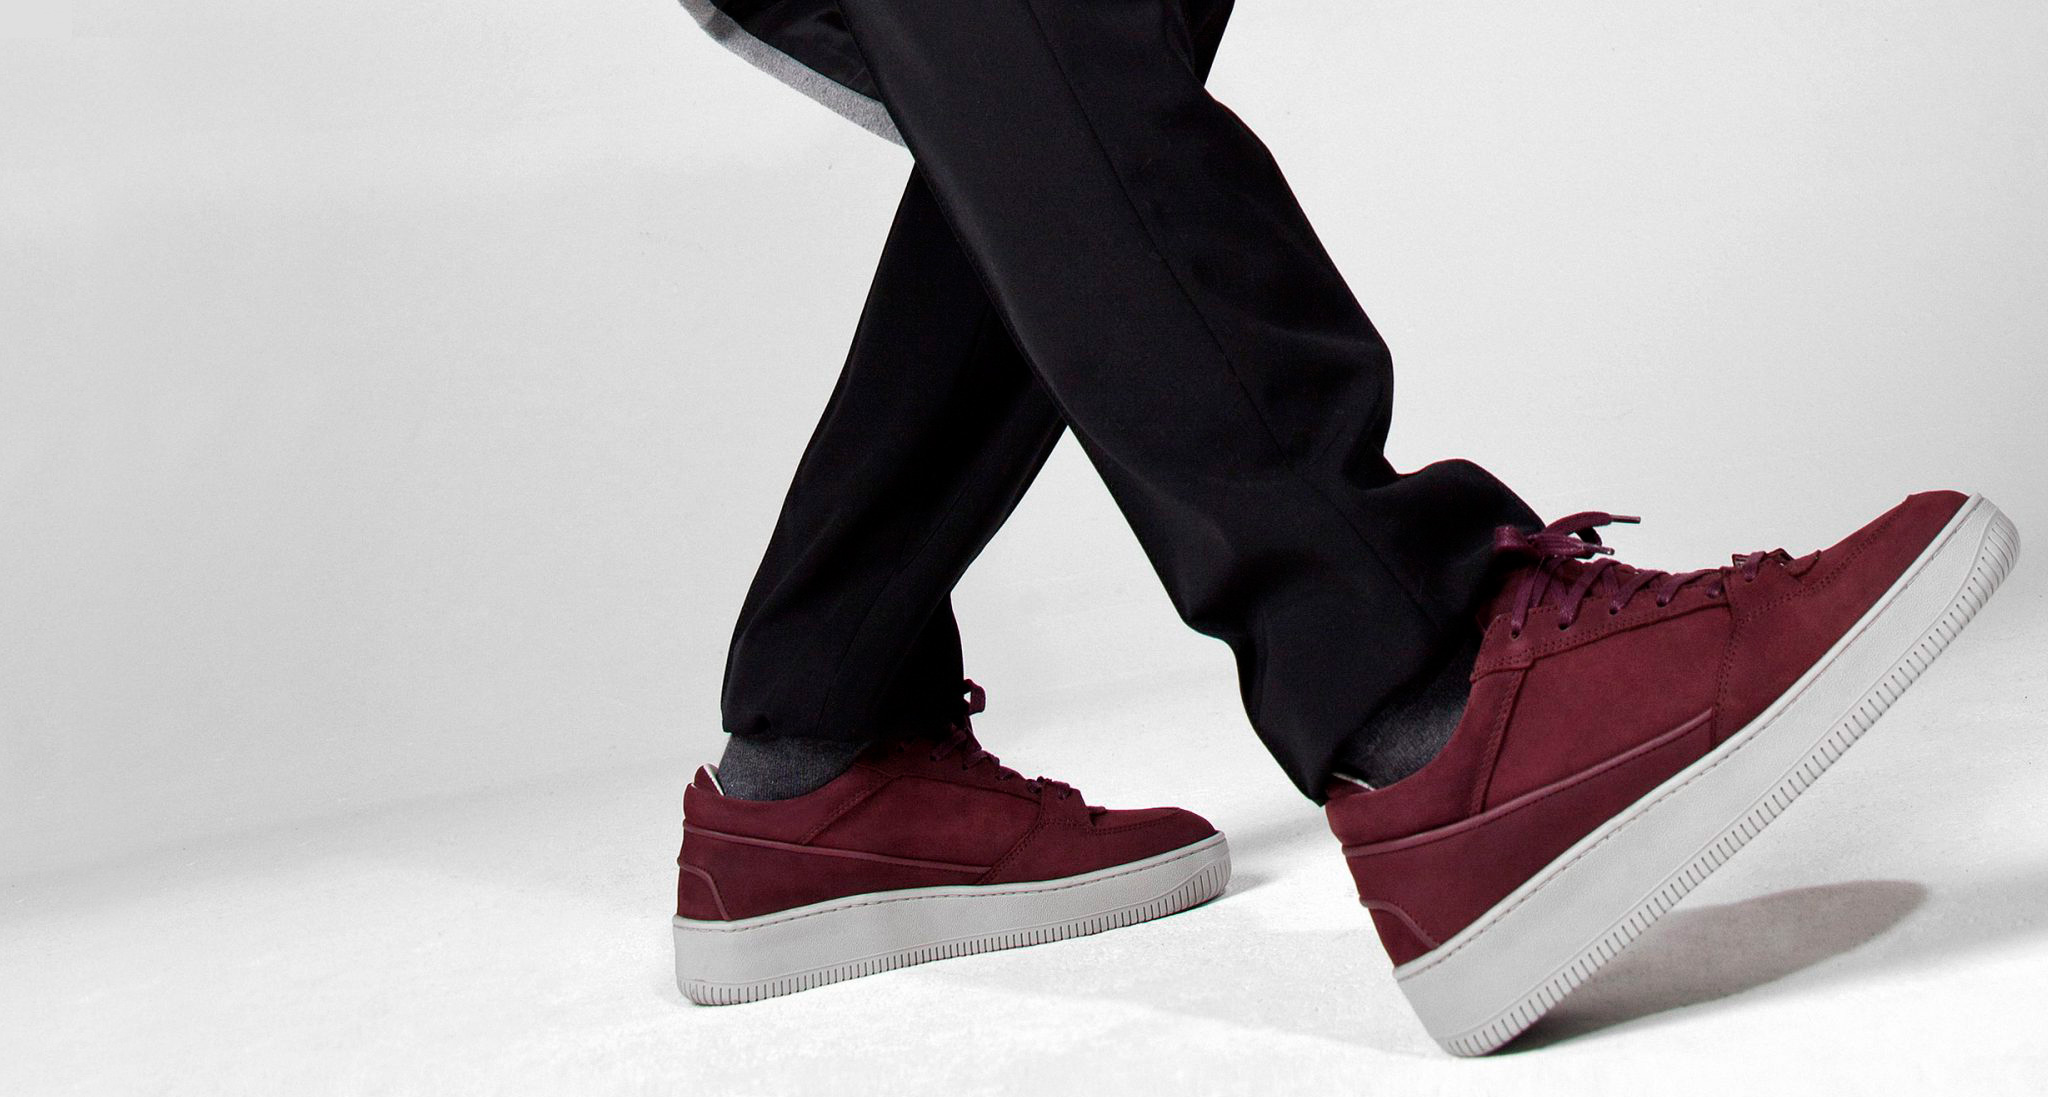 b0a1a015fe The Best Winter Sneakers From ETQ Amsterdam - OPUMO Magazine